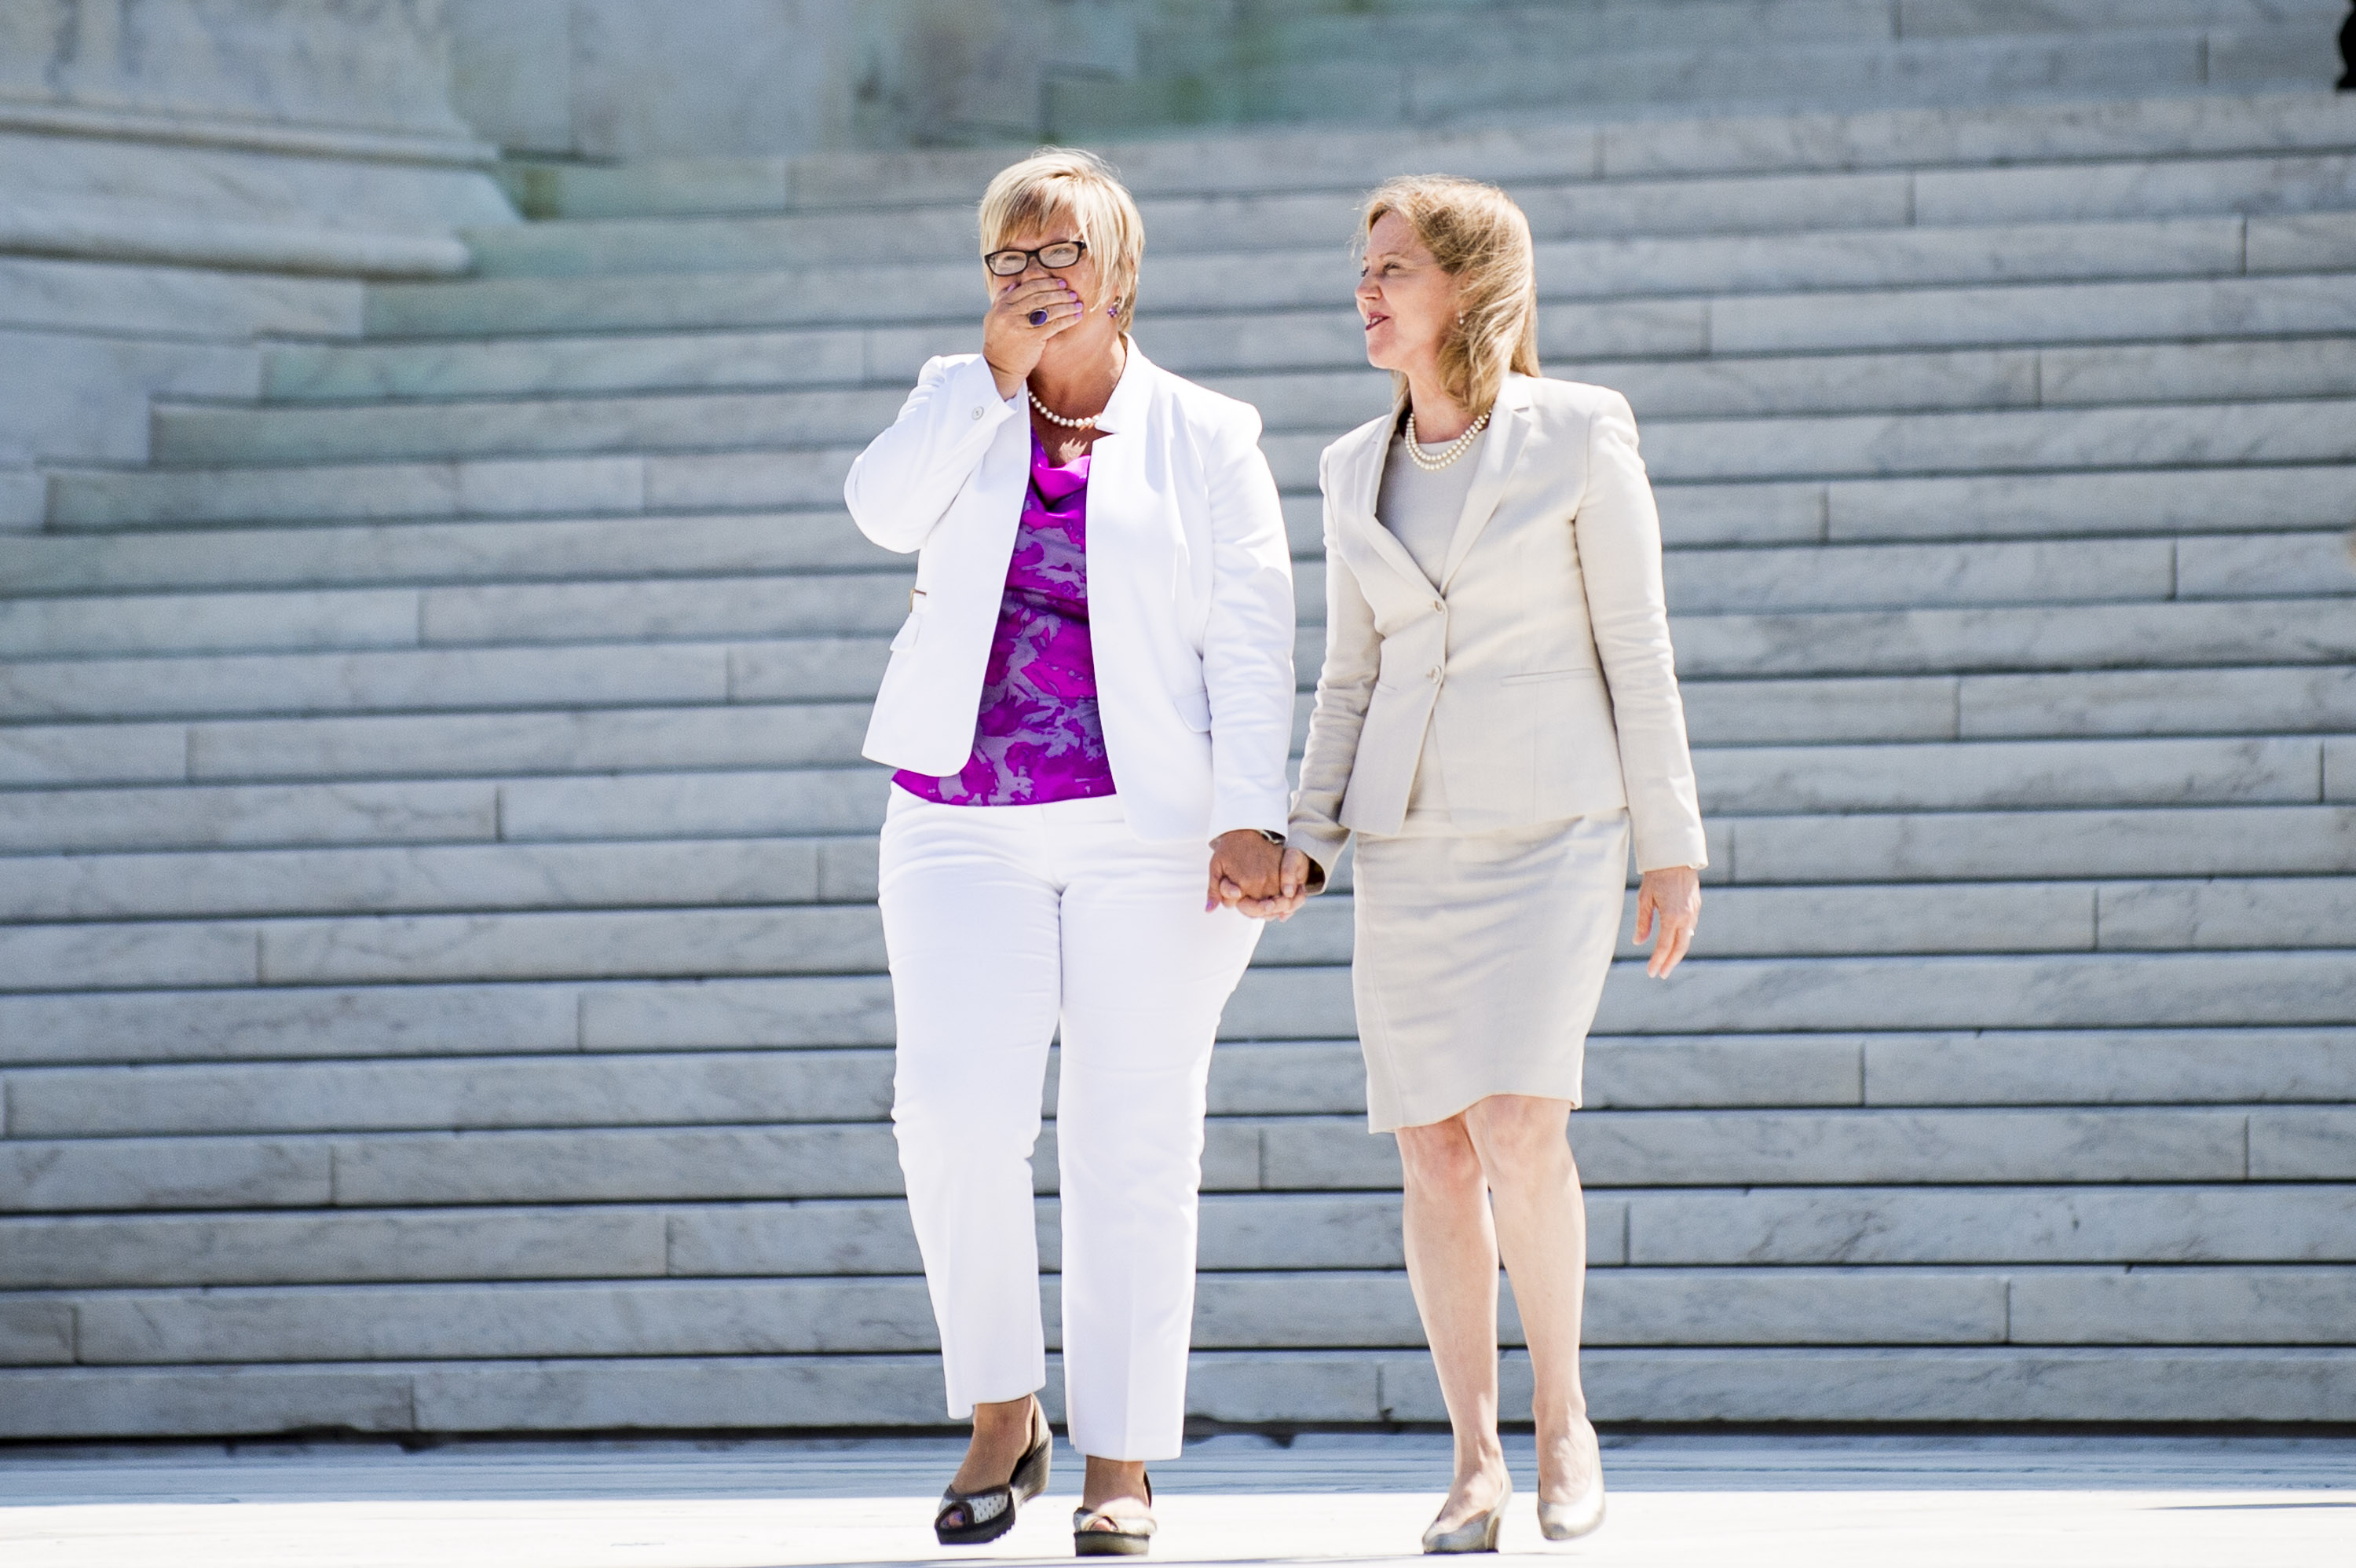 Texas abortion provider Amy Hagstrom-Miller is overcome from the applause as she walks down the steps of the United States Supreme Court with Nancy Northup, President of The Center for Reproductive Rights on June 27, 2016 in Washington, DC.